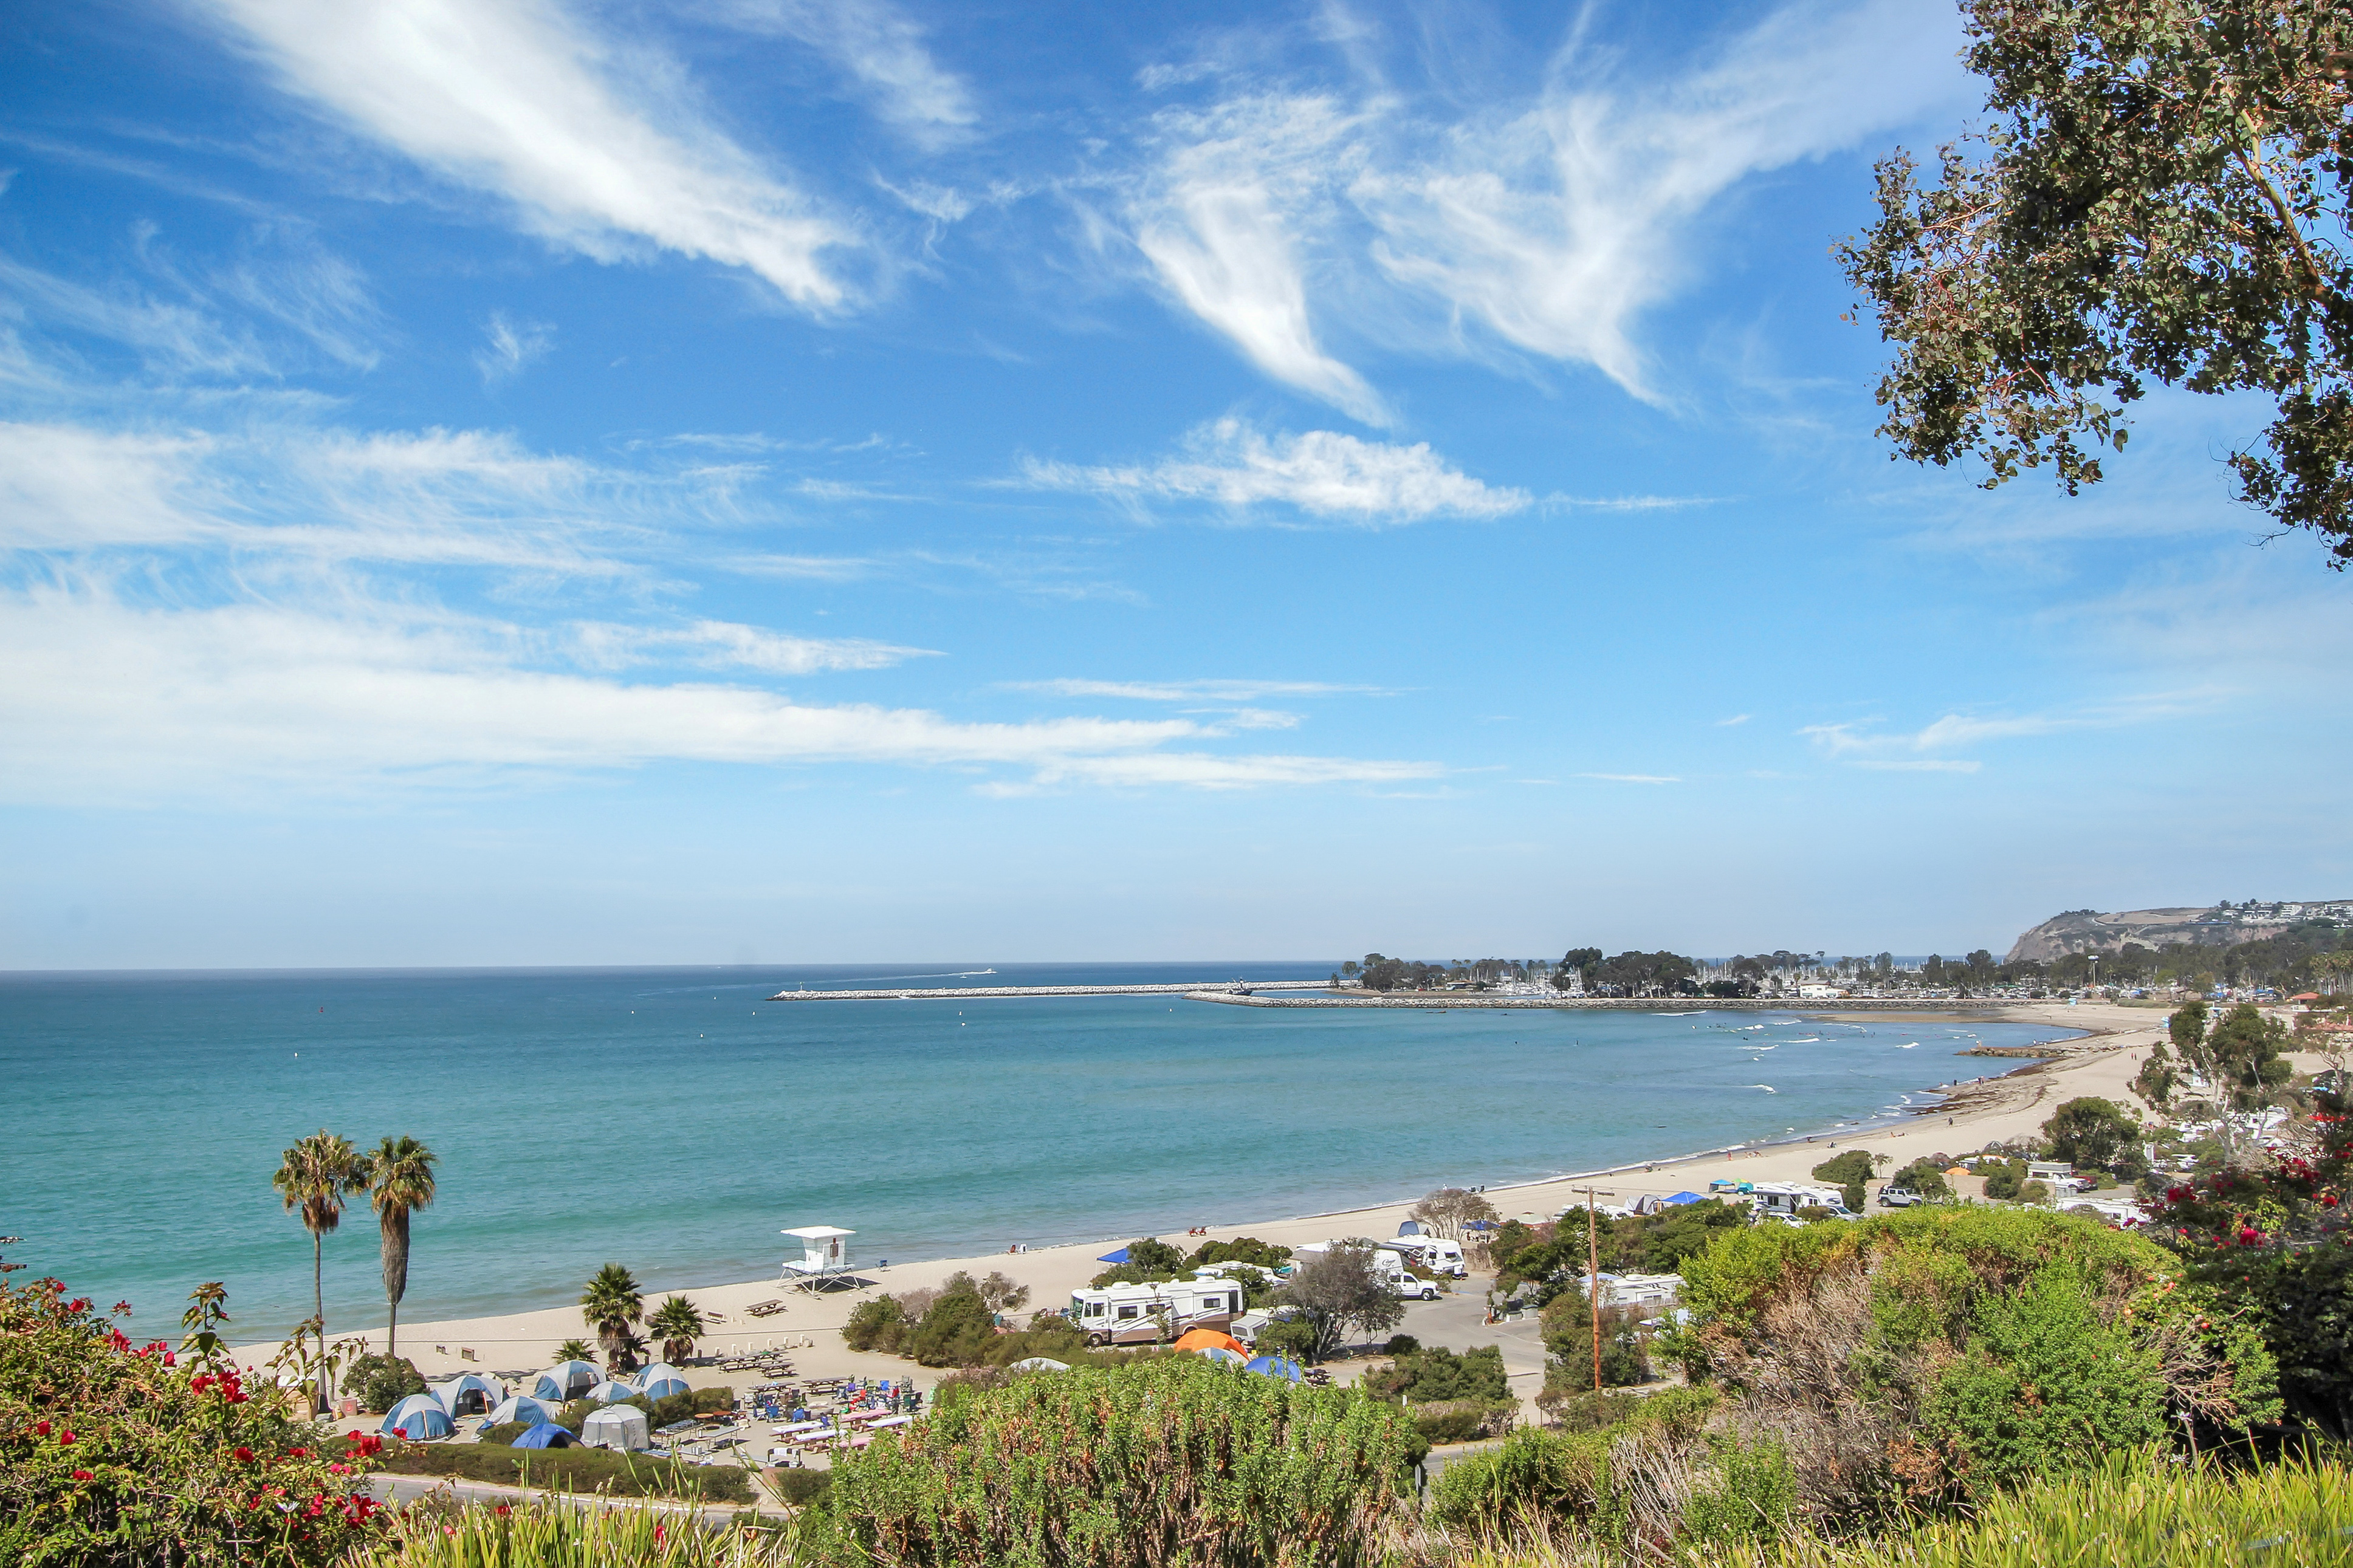 Dana Point DOHENY BEACH VIEW